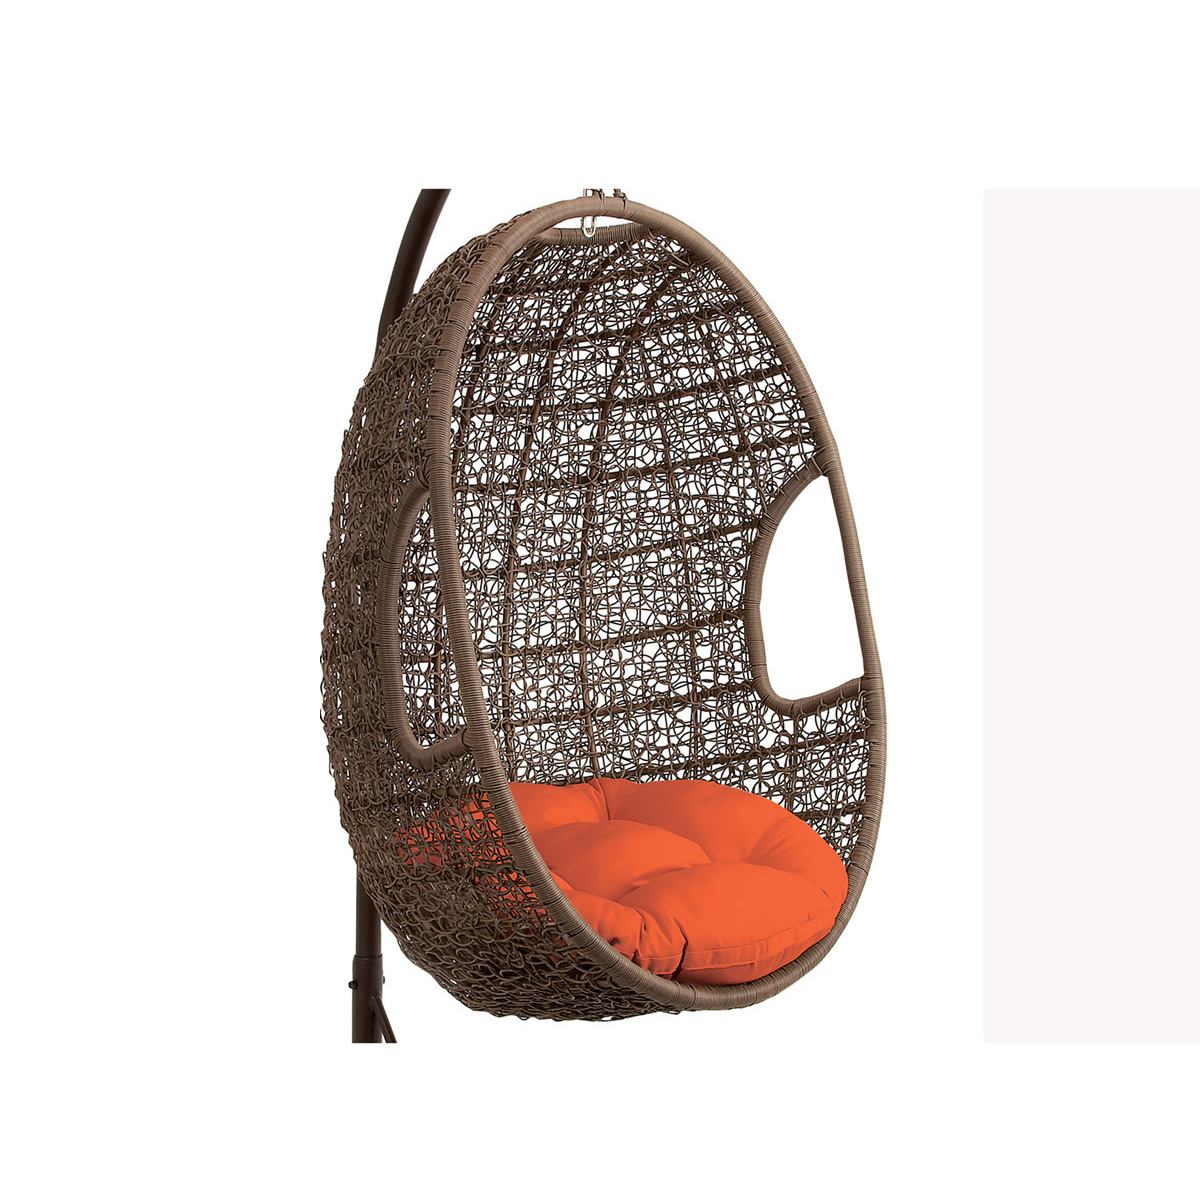 Hanover Outdoor Wicker Rattan Hanging Egg Chair Swing With Bold Stripe Pattern Free Shipping